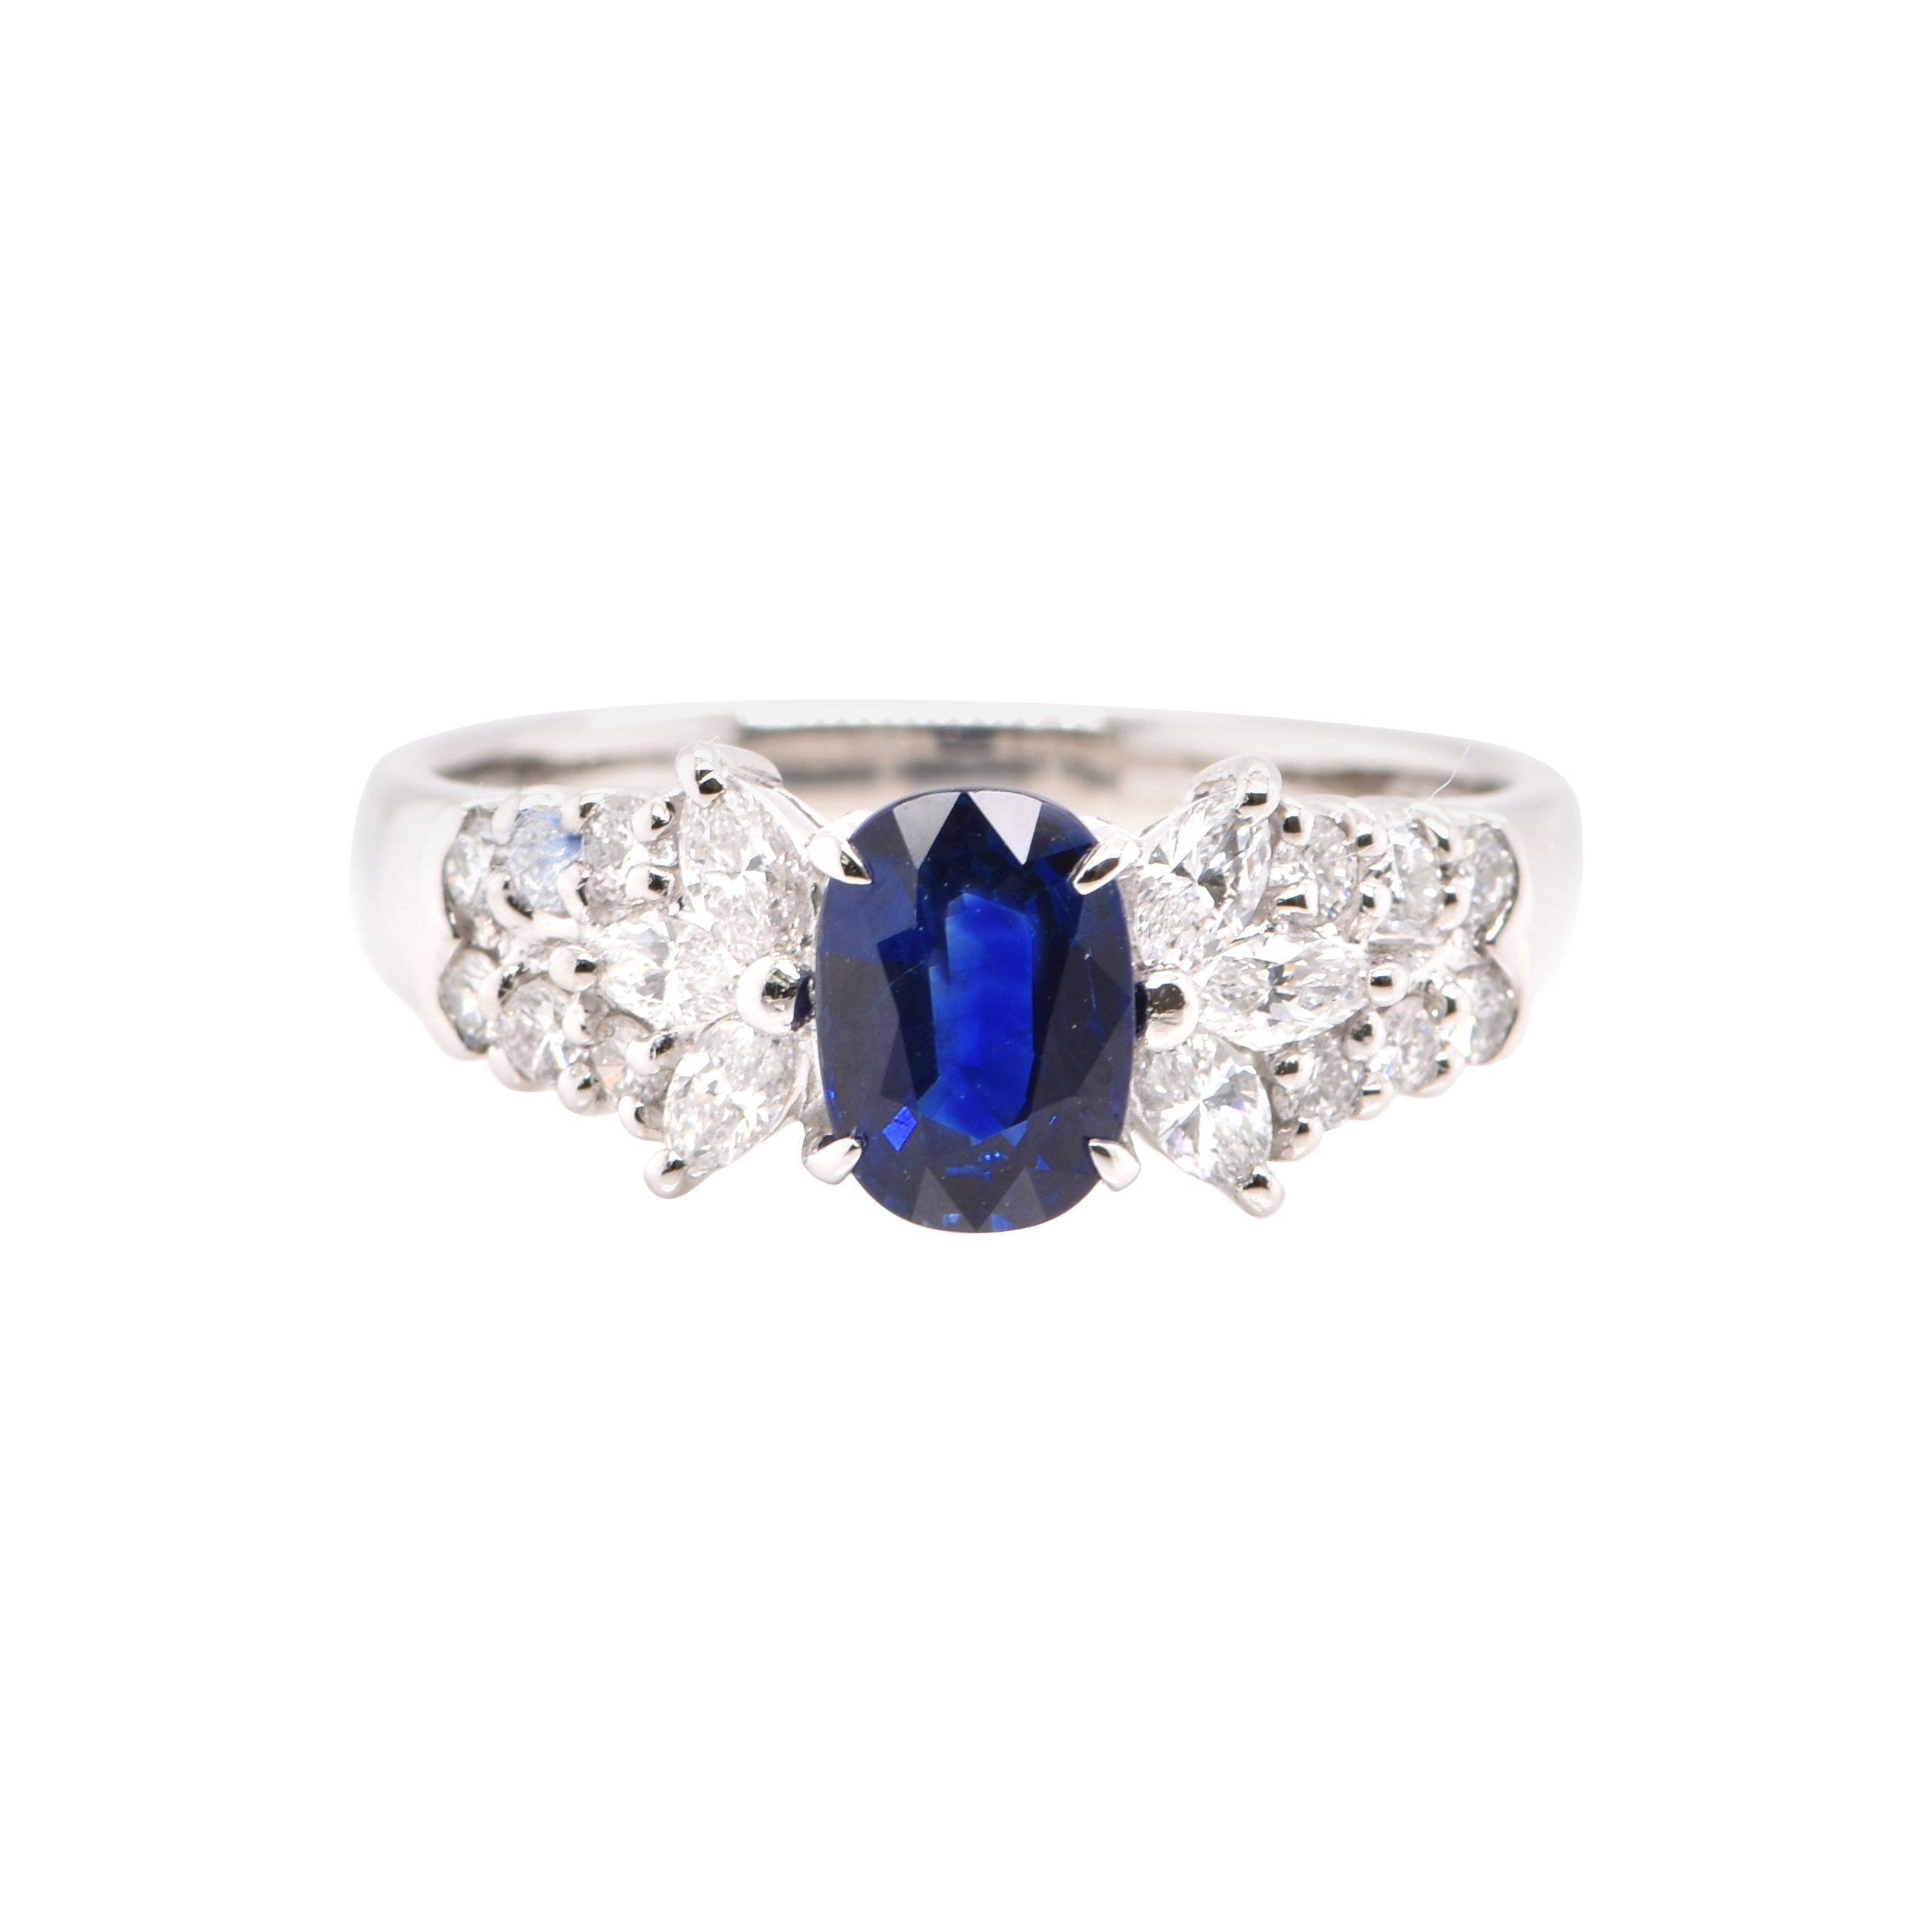 1.23 Carat, Natural Sapphire and Diamond Ring Set in Platinum